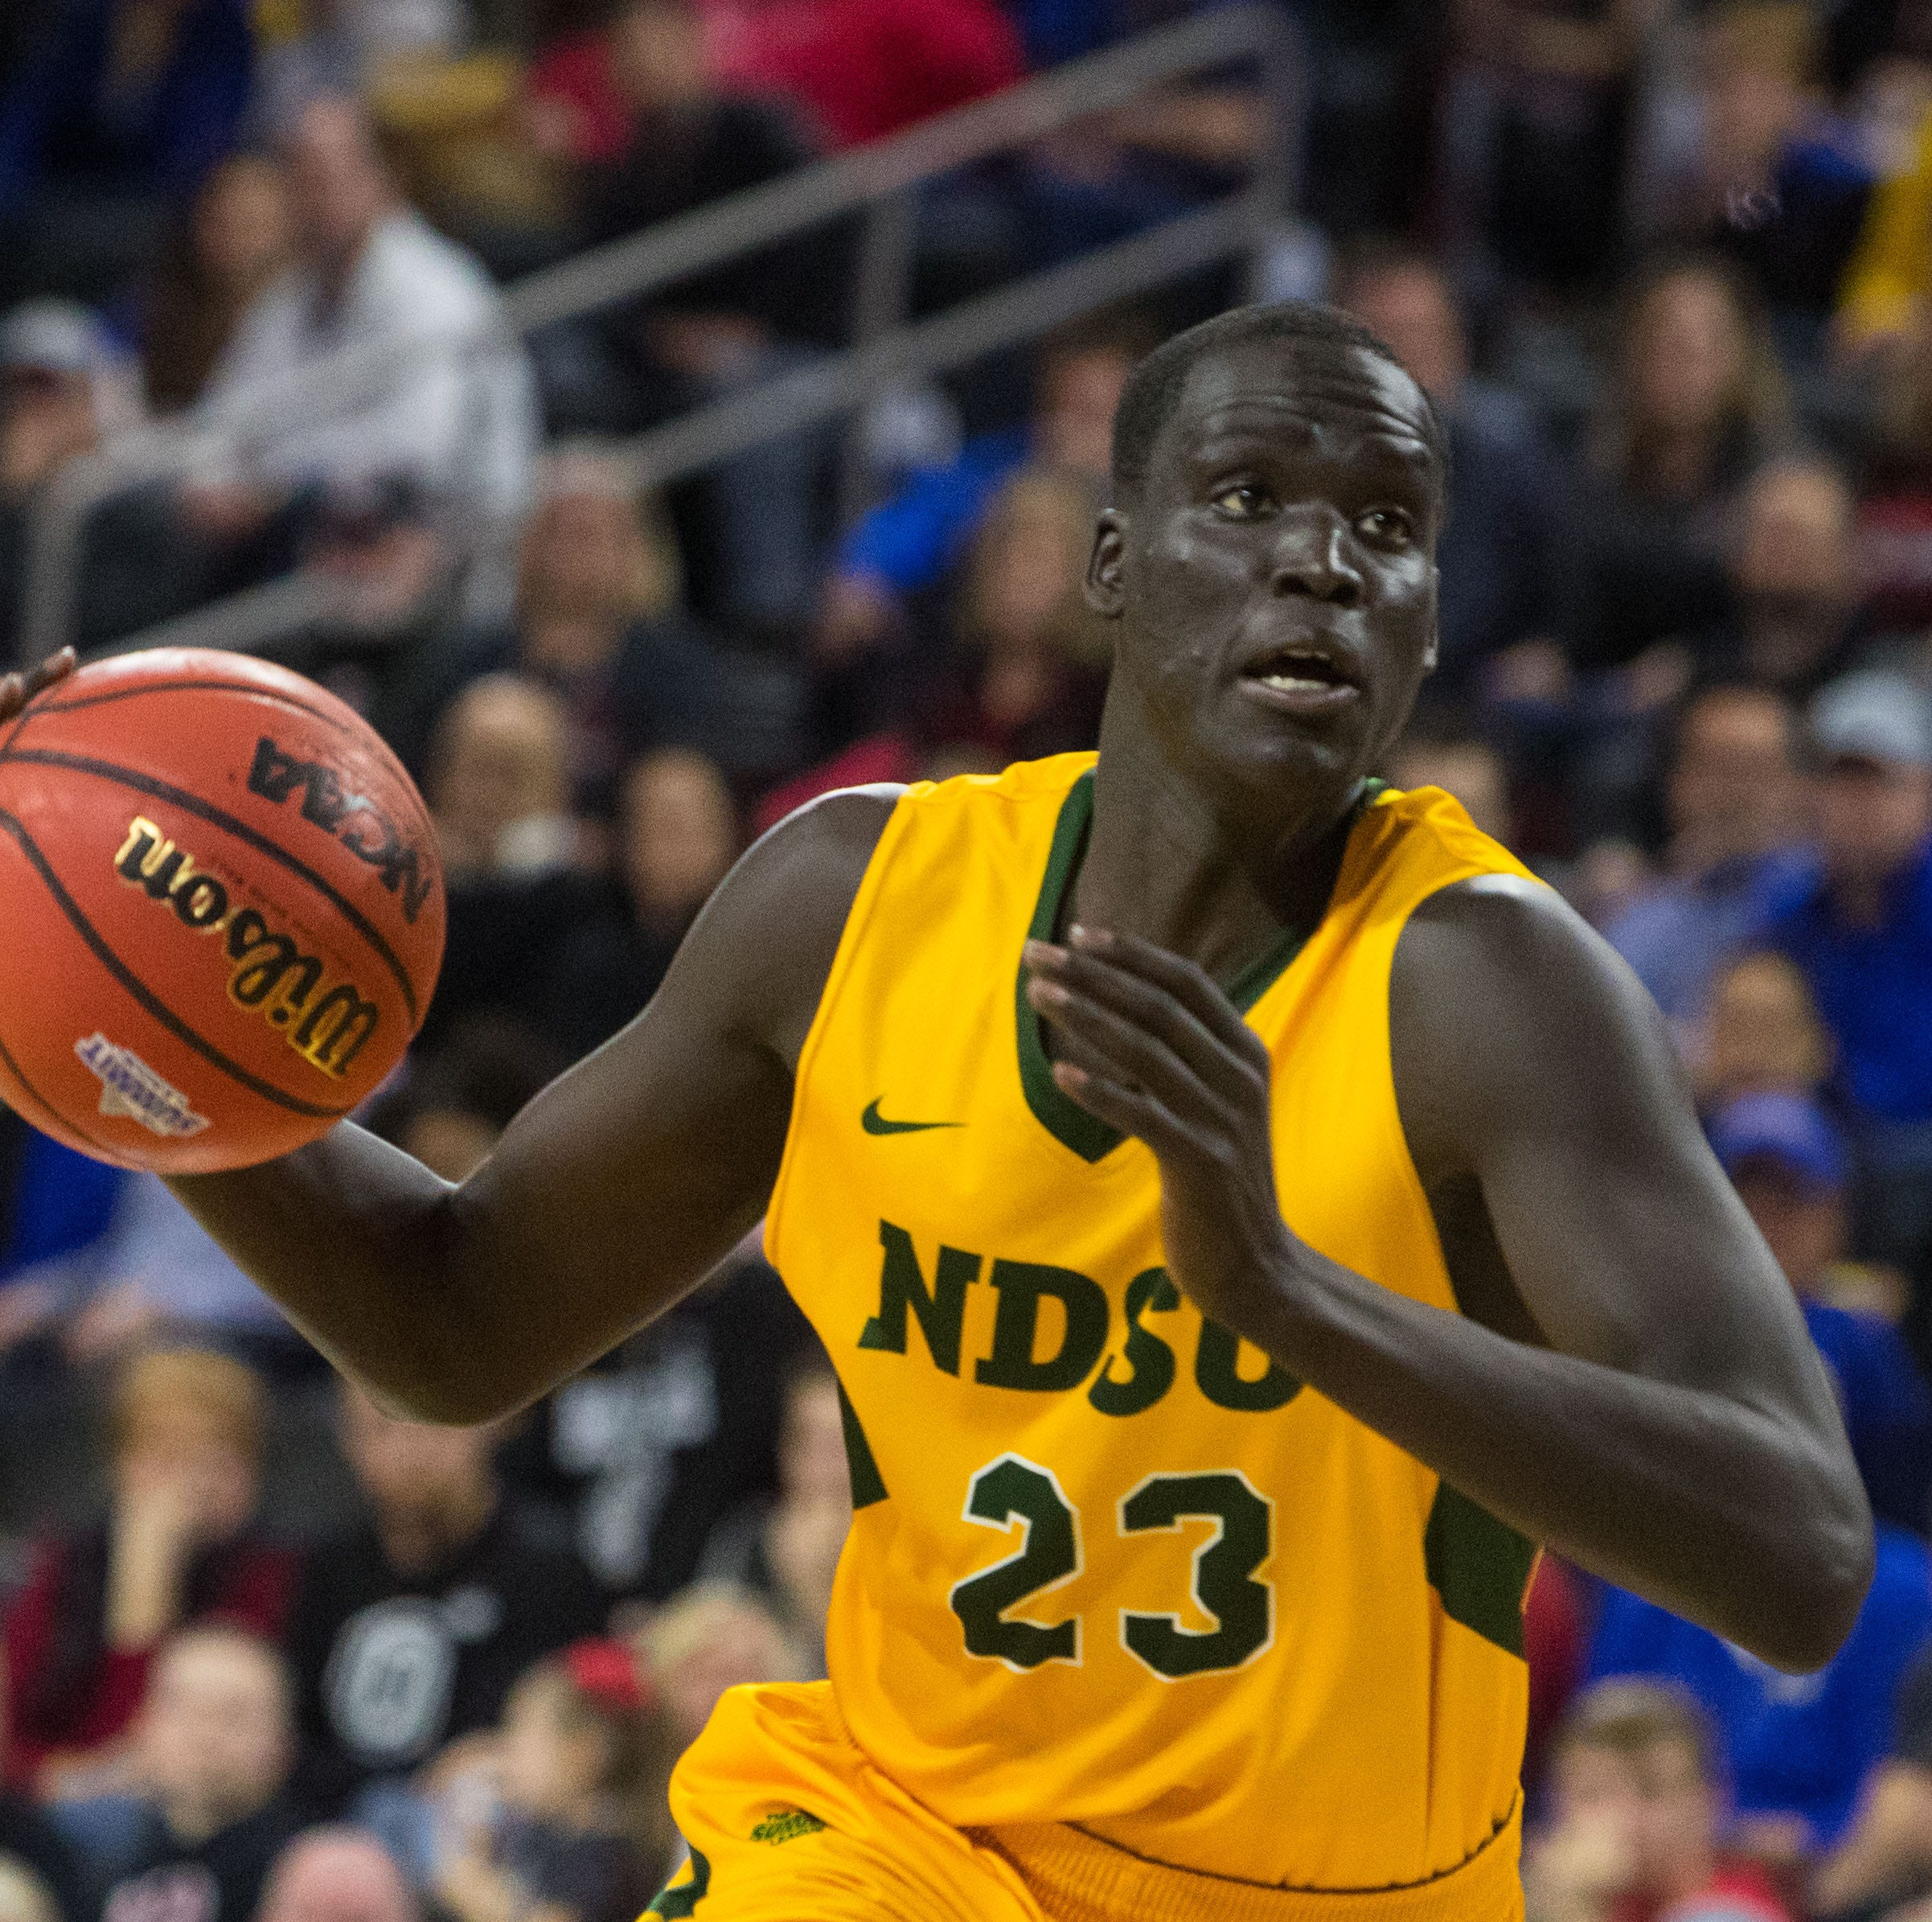 Report: Washington grad Deng Geu transferring to North Texas Mean Green